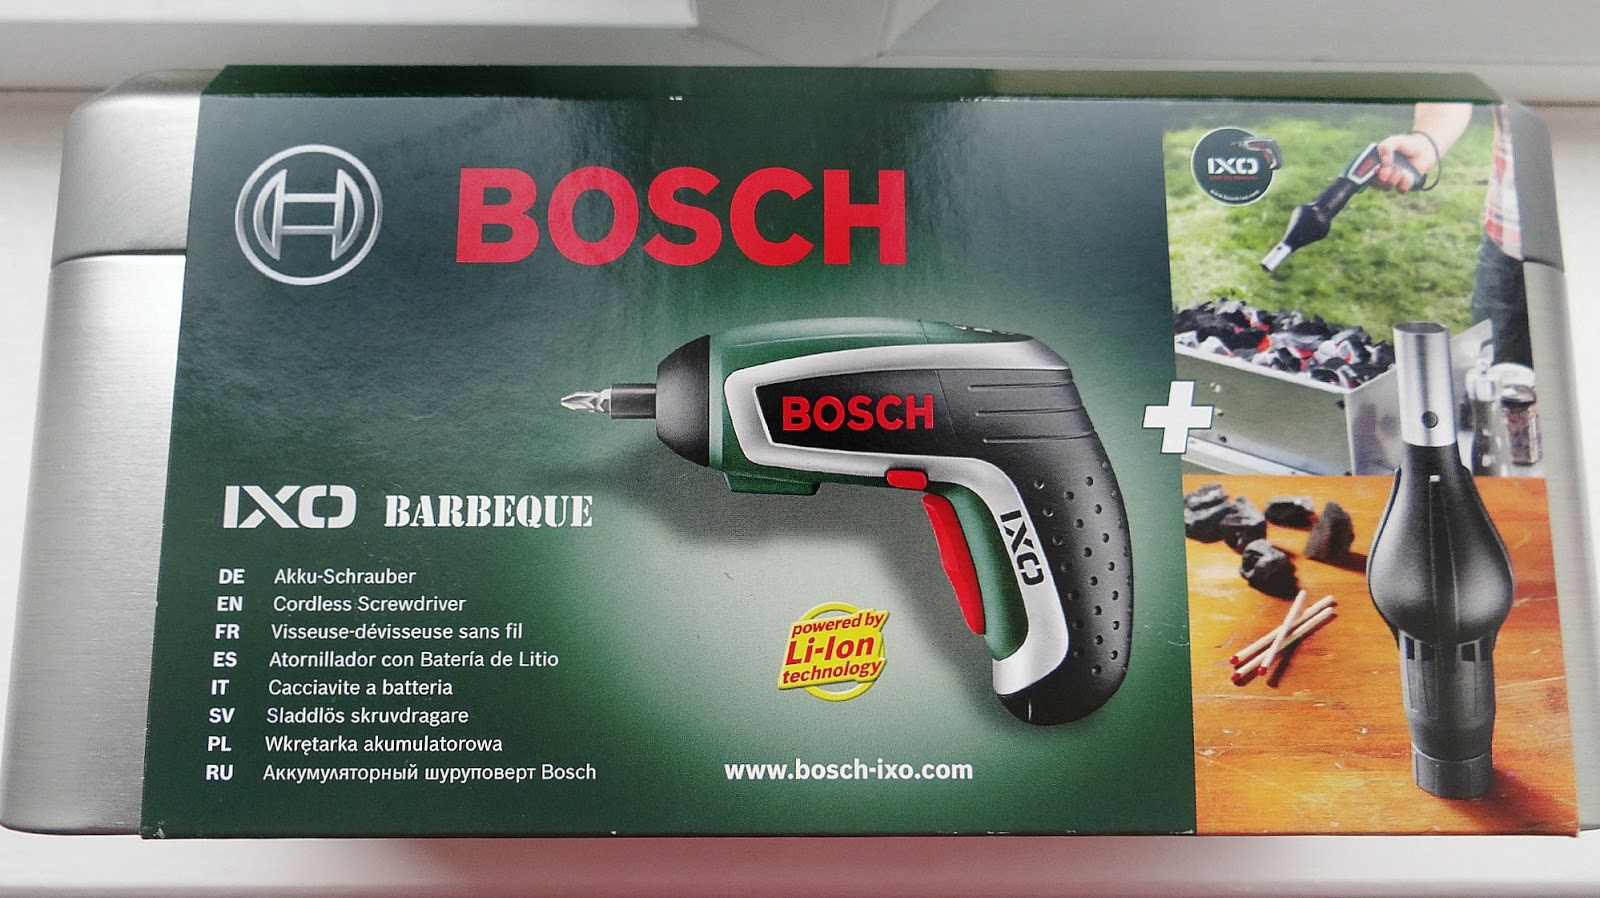 bosch ixo bbq and psr 10 8 li 2 cordless 2 speed drill. Black Bedroom Furniture Sets. Home Design Ideas